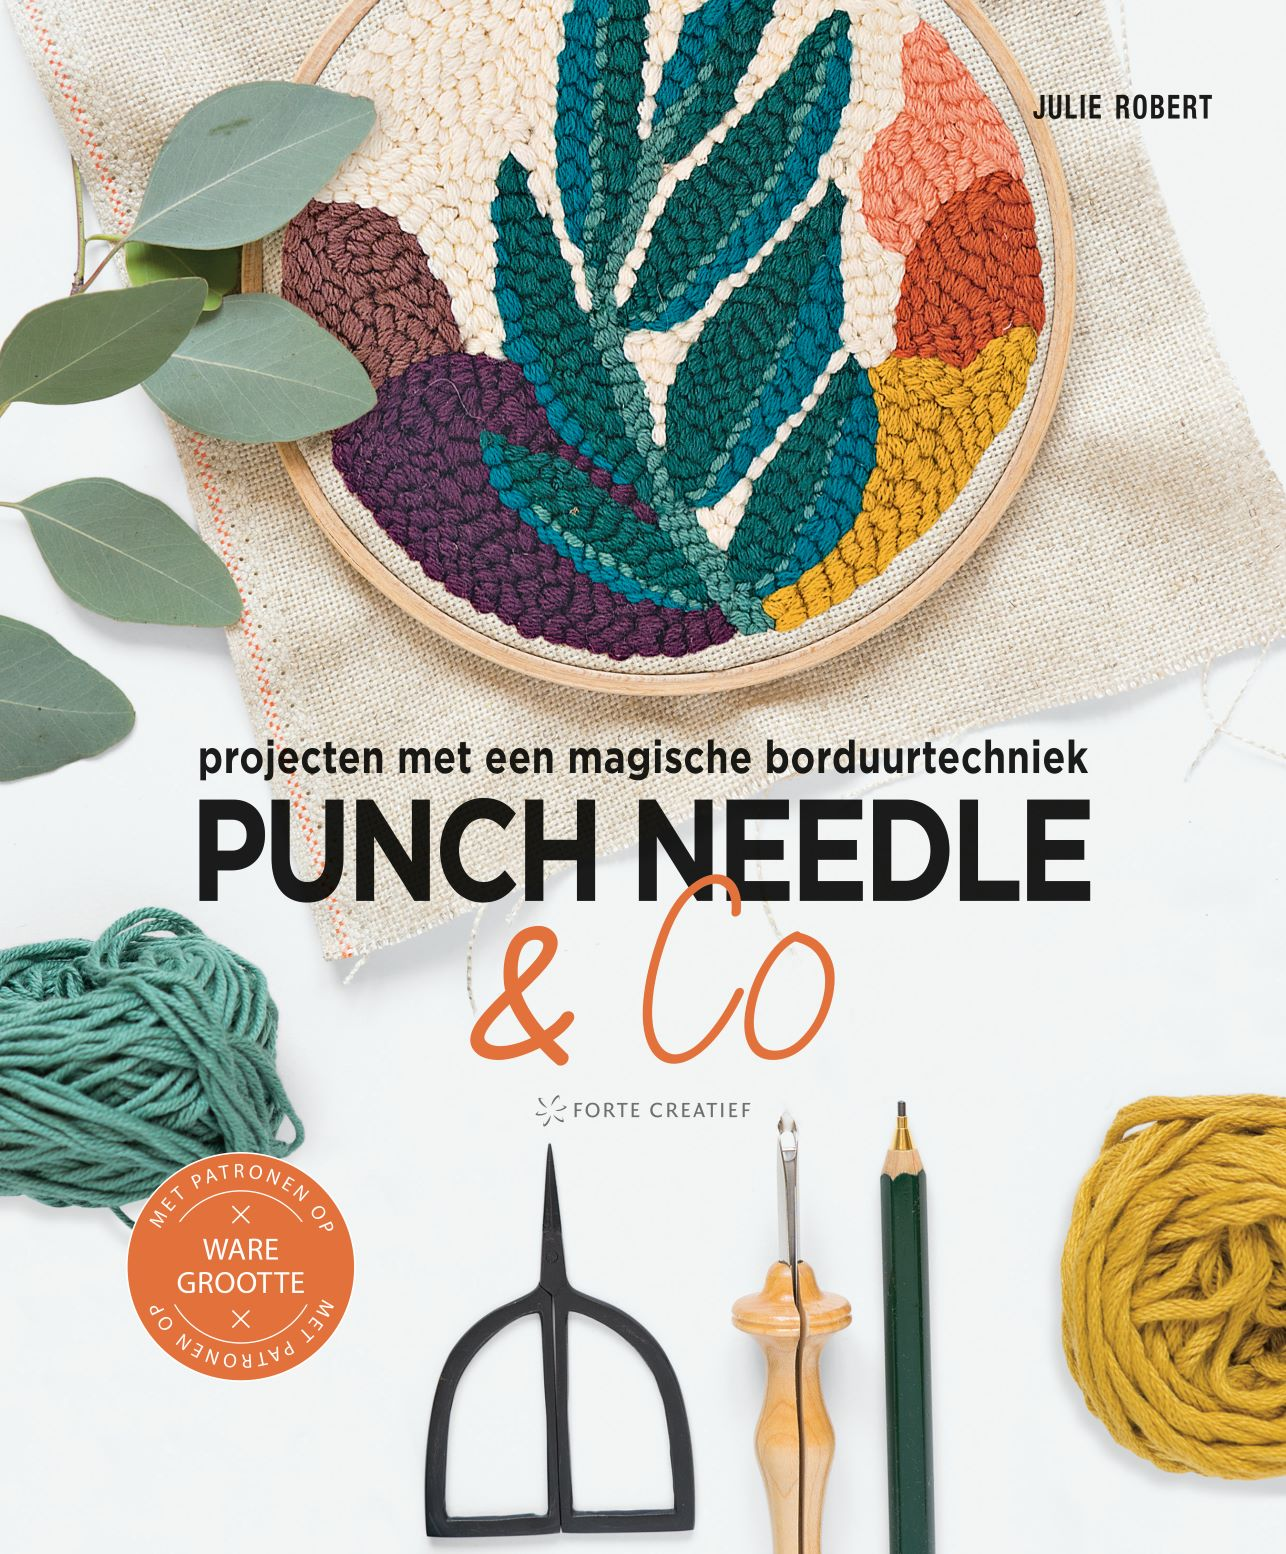 Punch needle & Co.